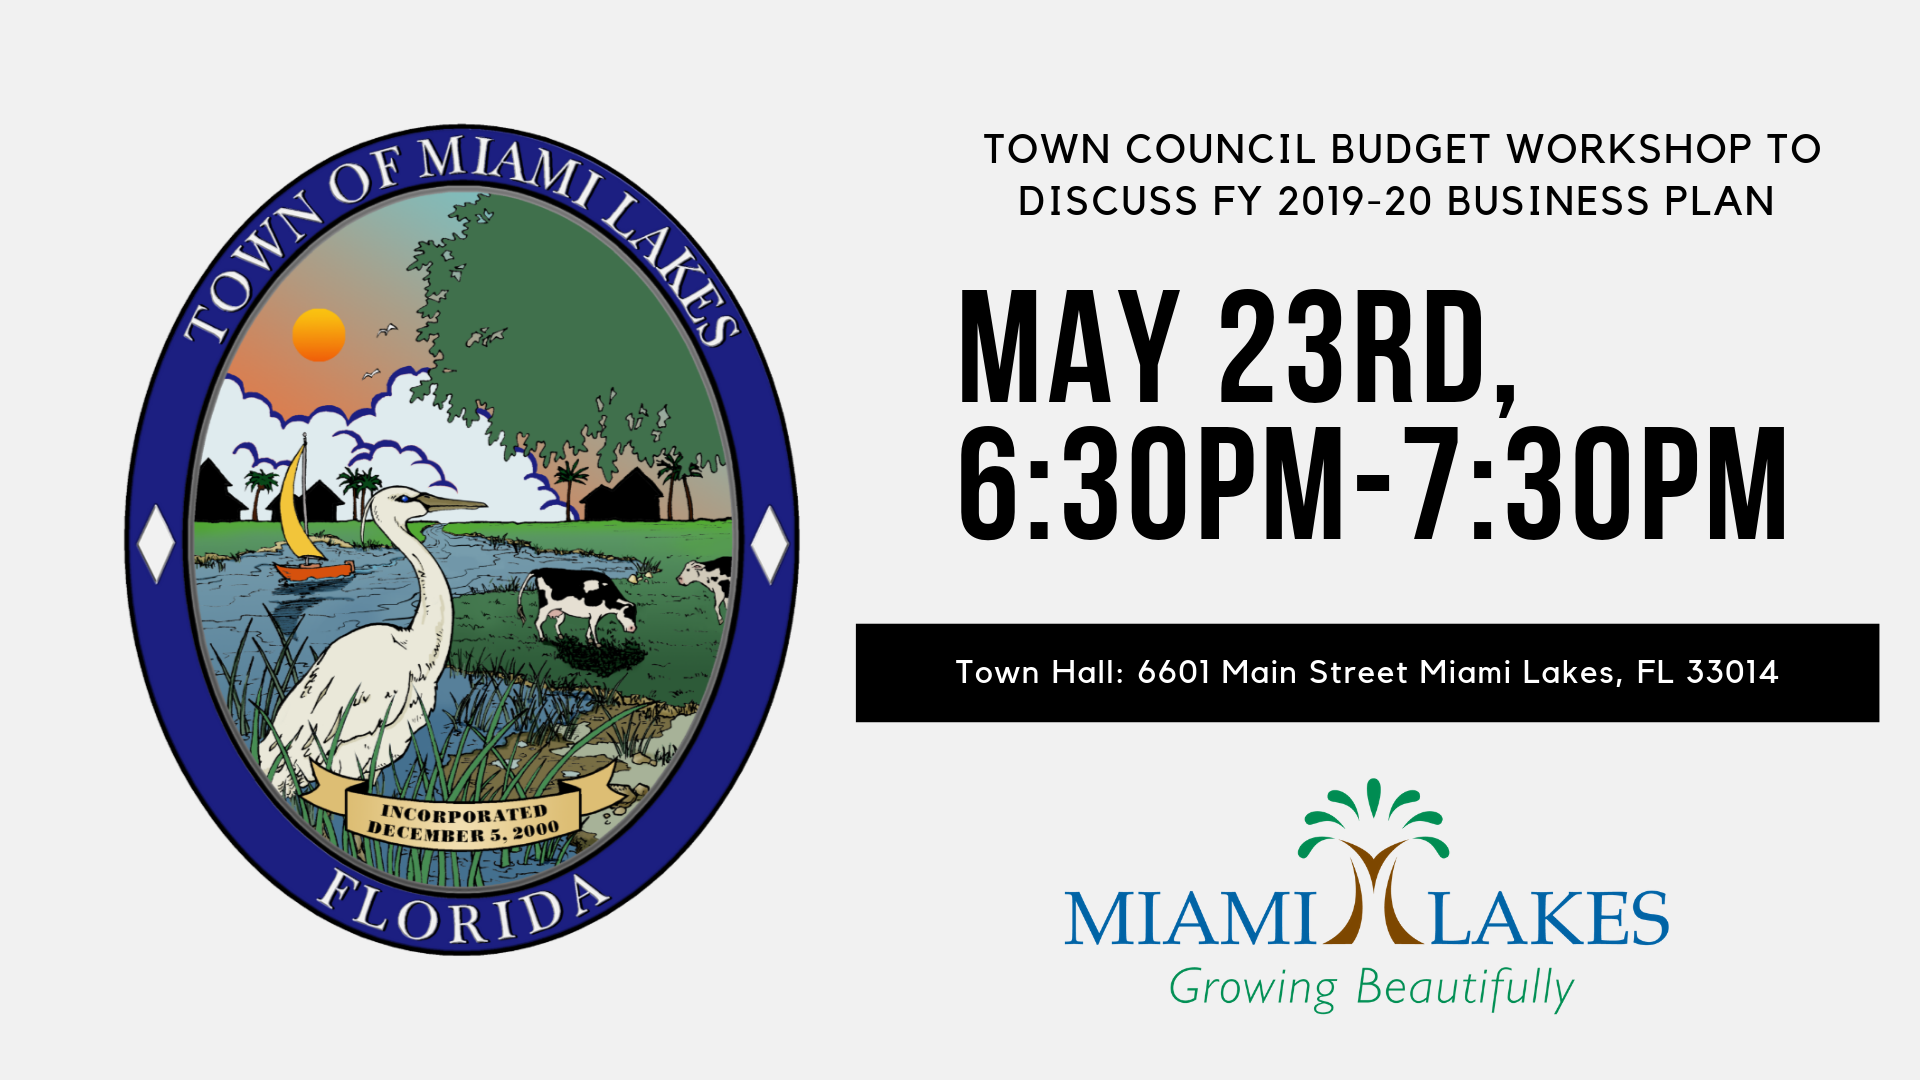 TOWN COUNCIL BUDGET WORKSHOP TO DISCUSS FY 2019 20 BUSINESS PLAN